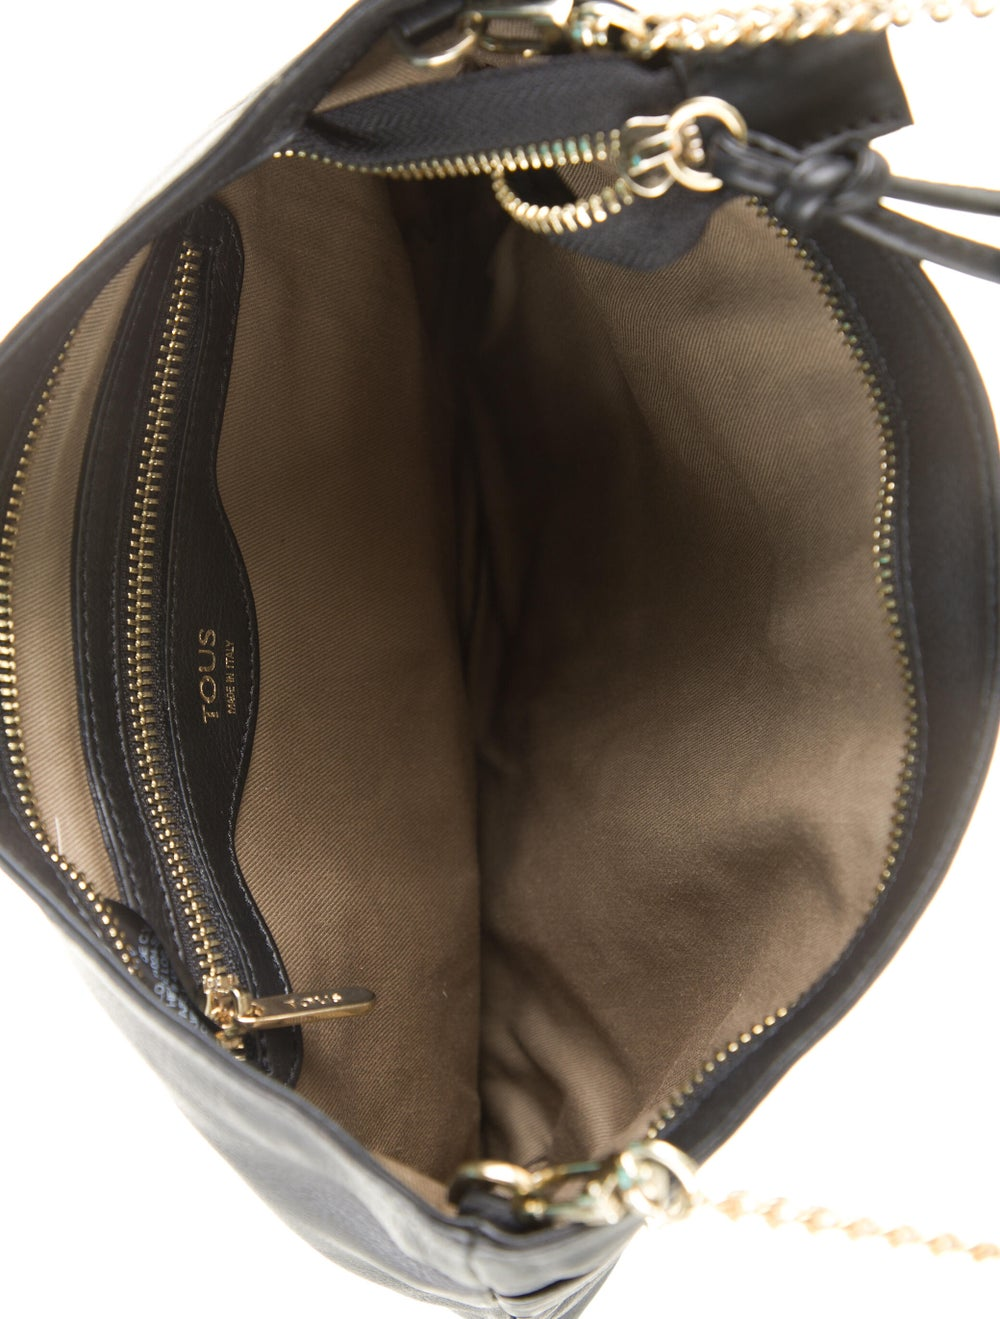 Tous Leather Crossbody Bag Black - image 5